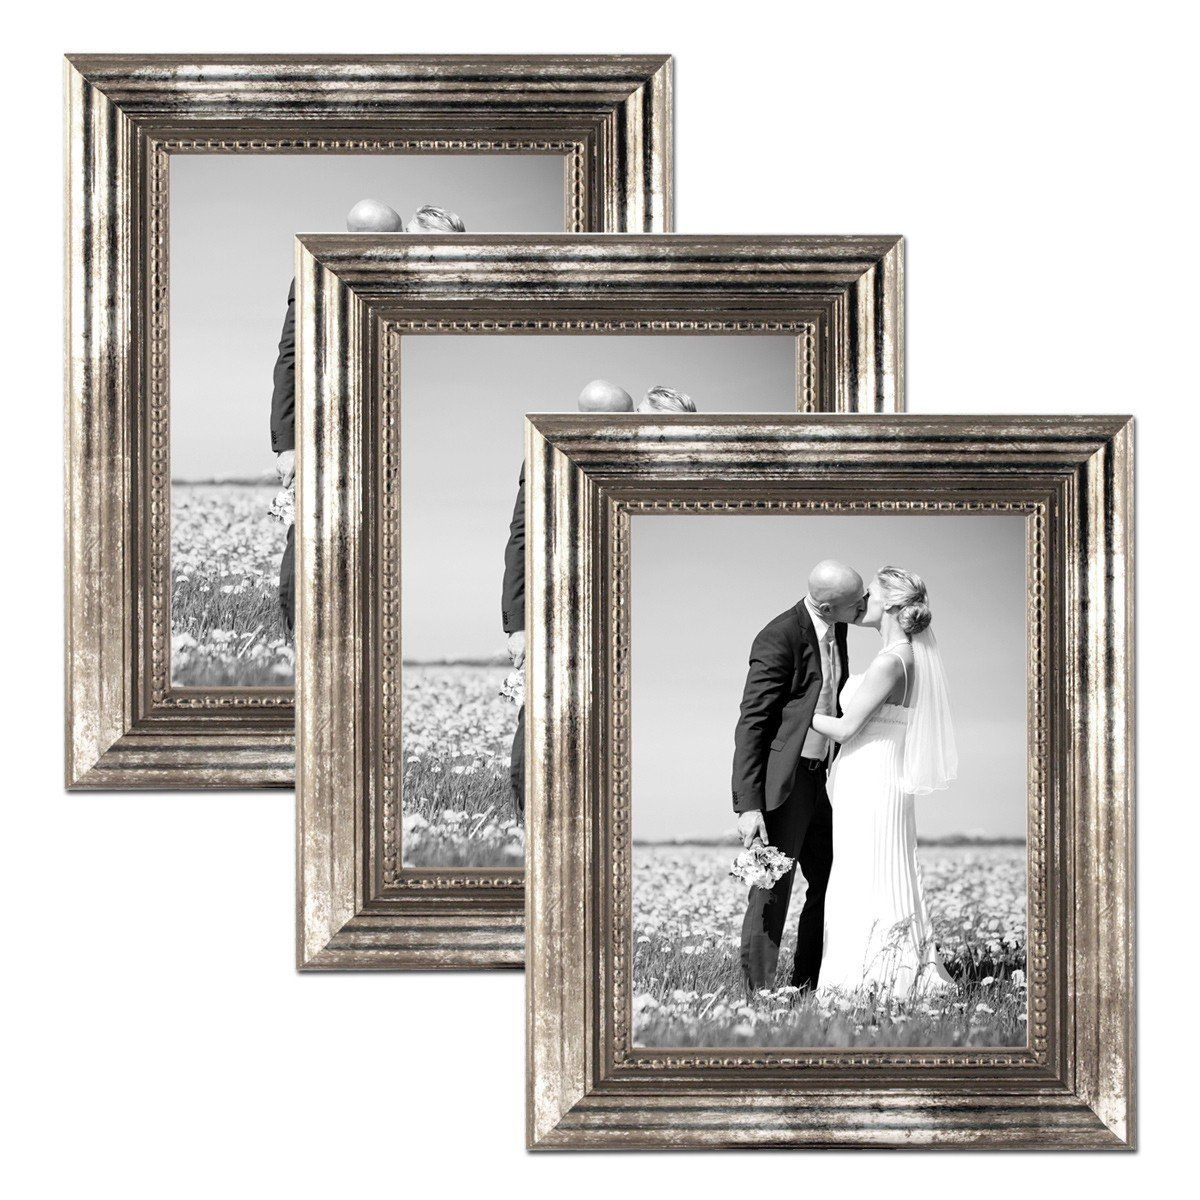 Set Of 3 Picture Frames With Dimensions Of 21x30 Cm A4 In Silver Baroque Antique Solid Wood With Glass Insert Incl Picture Frames Frame 3 Picture Frame